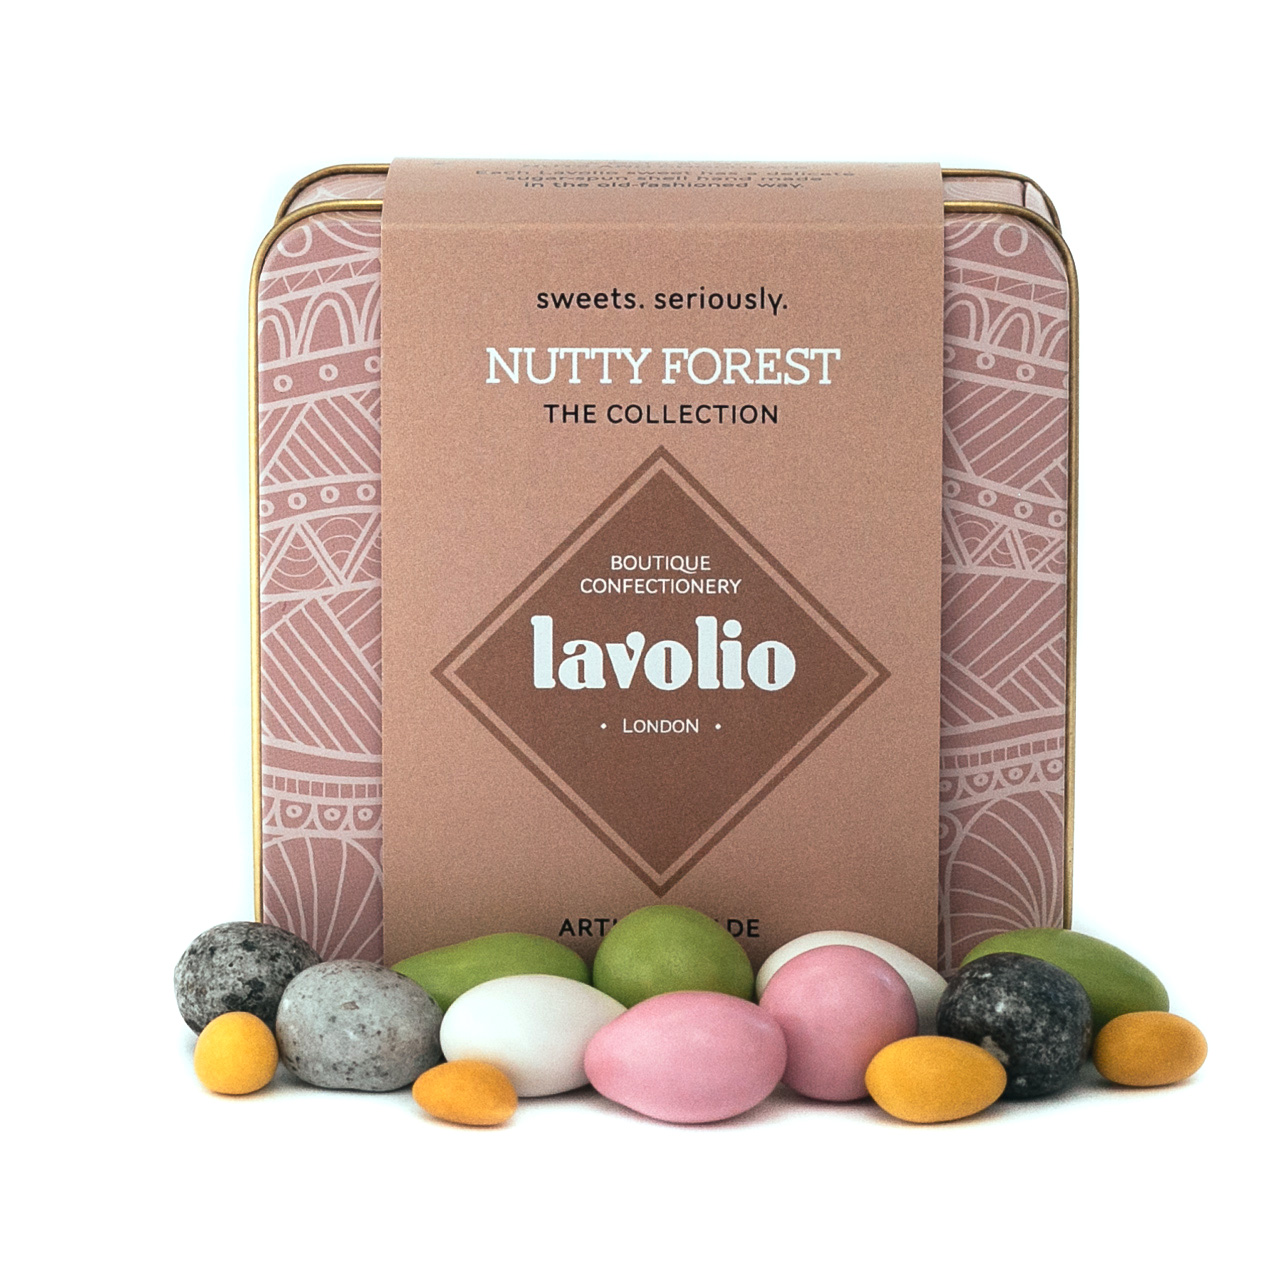 Lavolio Nutty Forest Collection